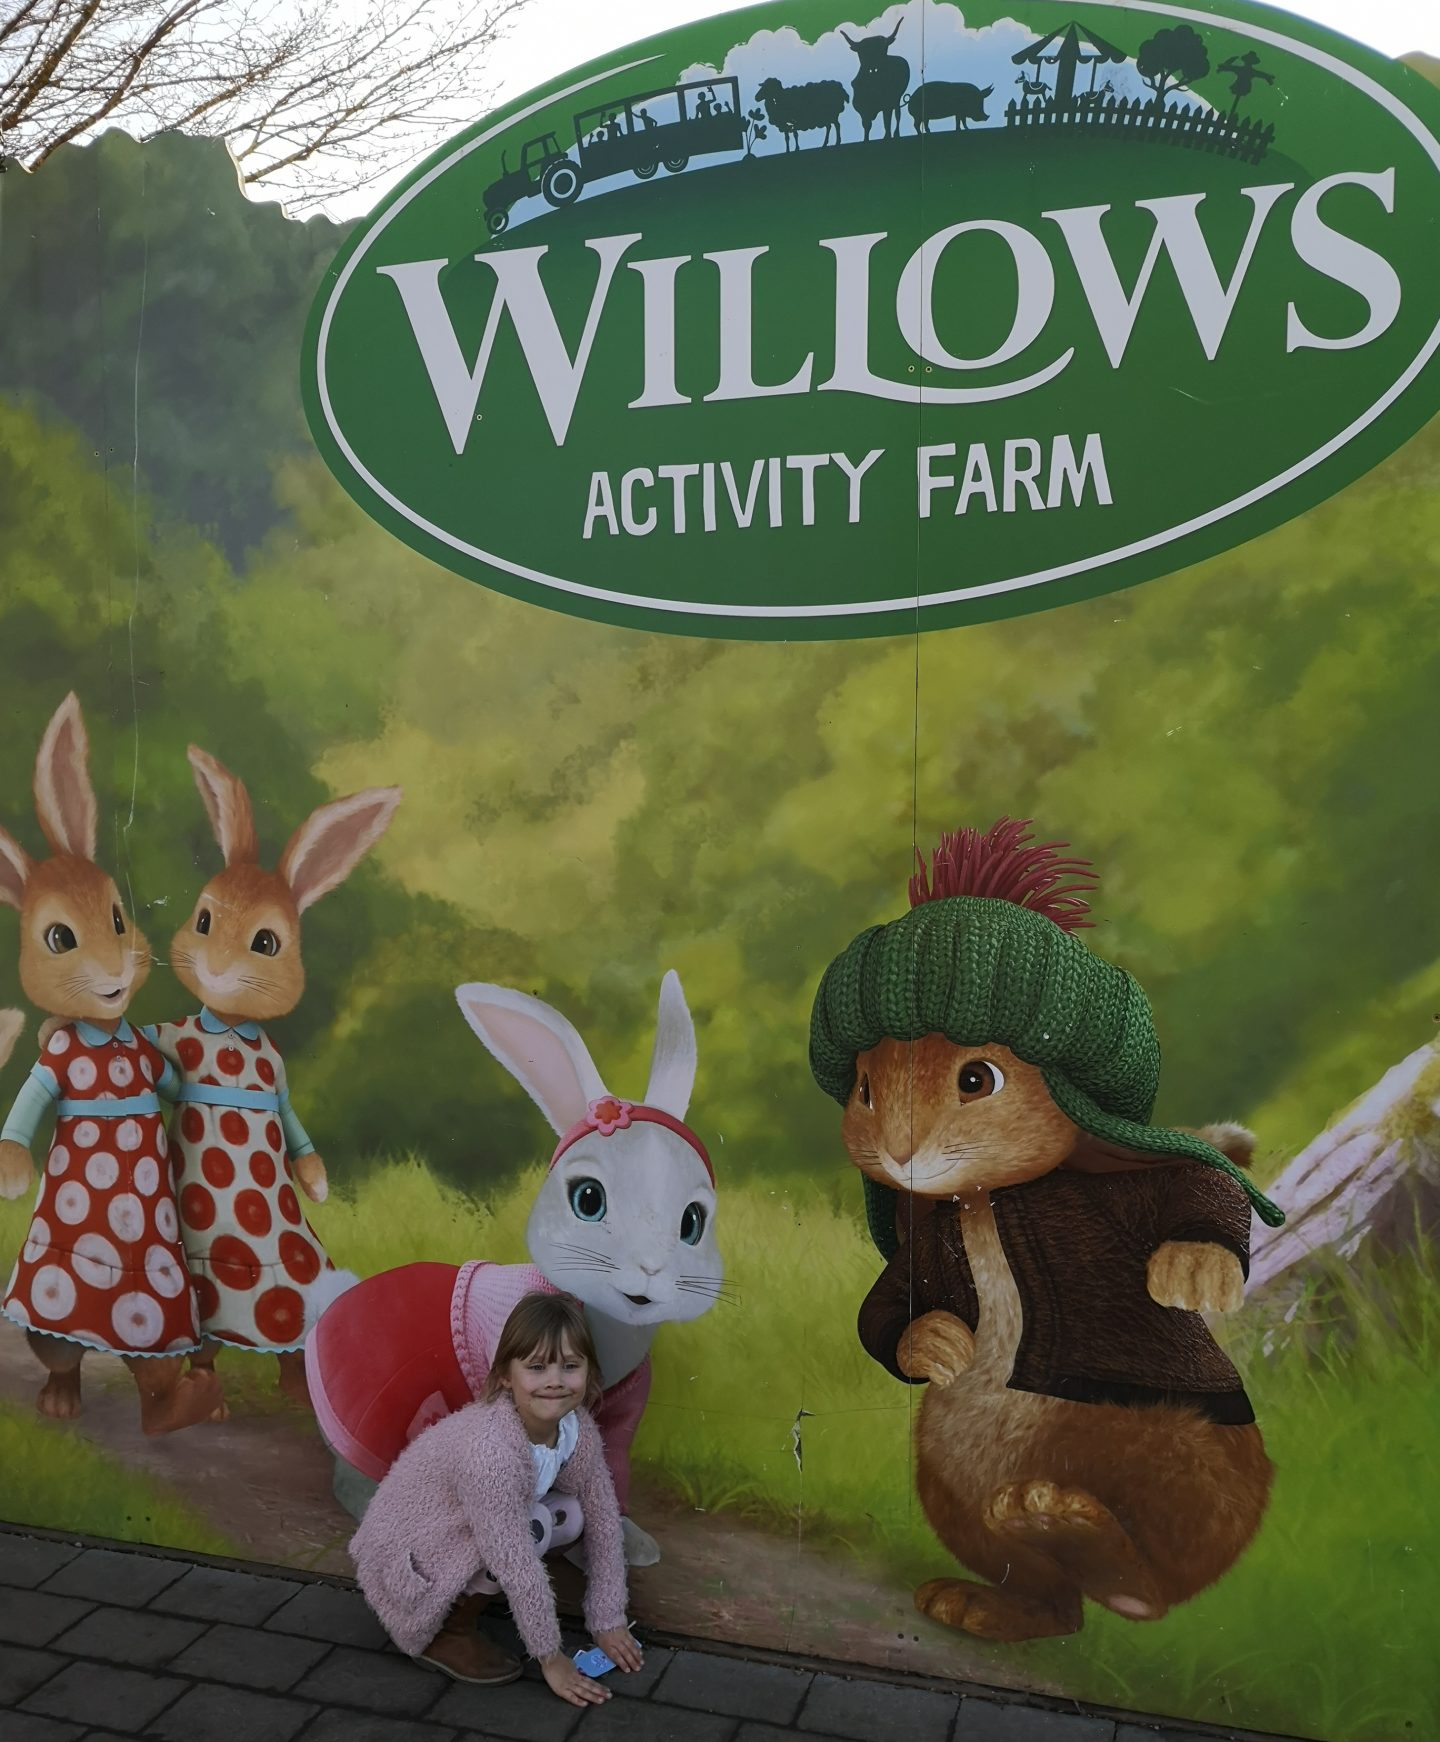 A day with friends at Willows Activity Farm